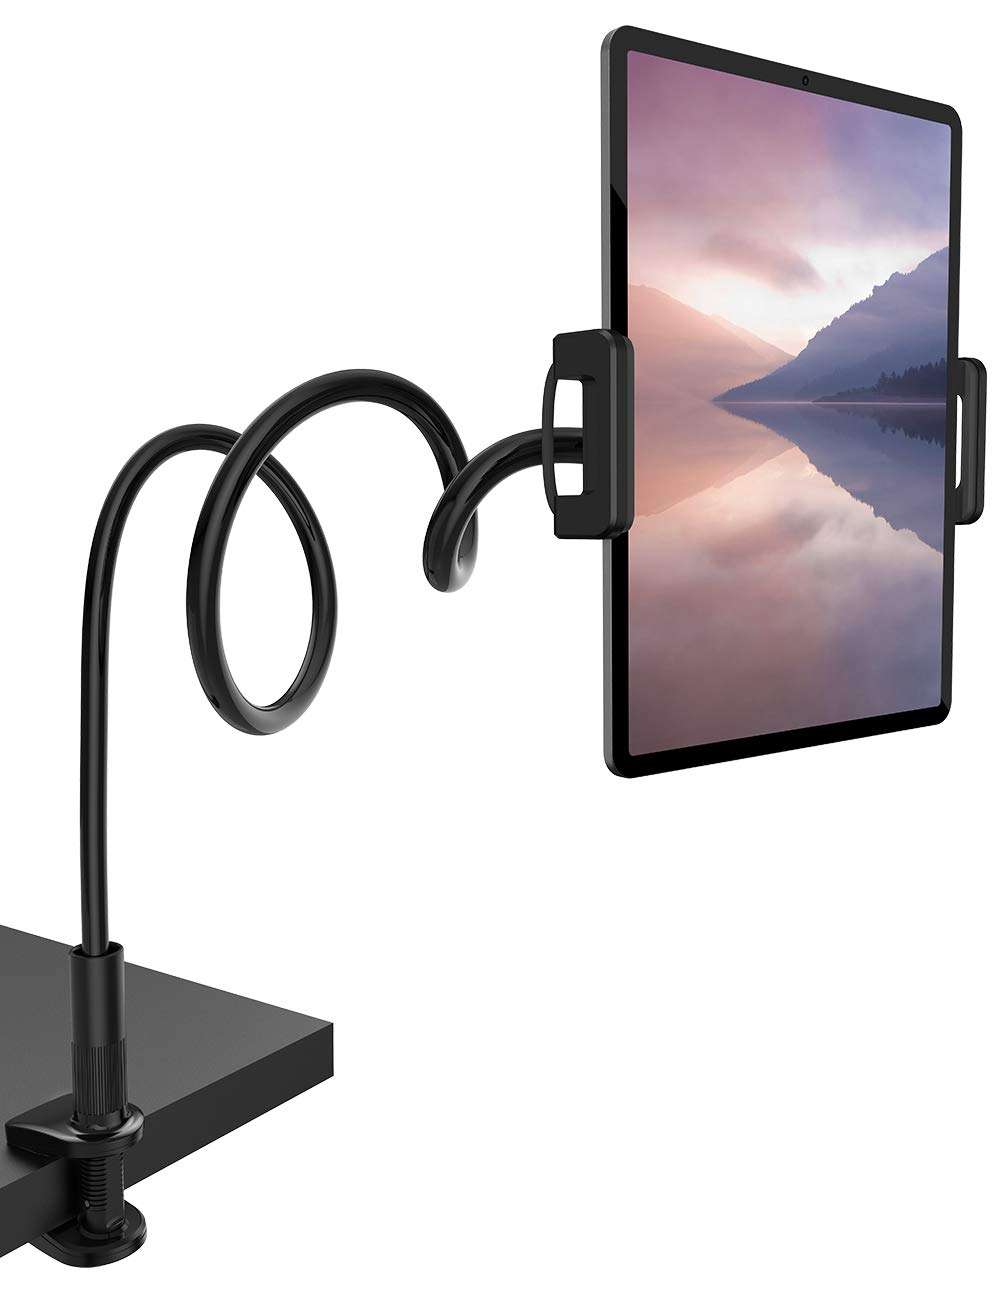 "Gooseneck Tablet Mount Holder for Bed - Lamicall Flexible Tablet Arm Clamp, Bed Stand for 4.7-11"" Devices, Such as iPad Mini 7.9, Air 9.7, Pro 10.5/11, Nintendo Switch, Samsung Galaxy Tabs - Black"